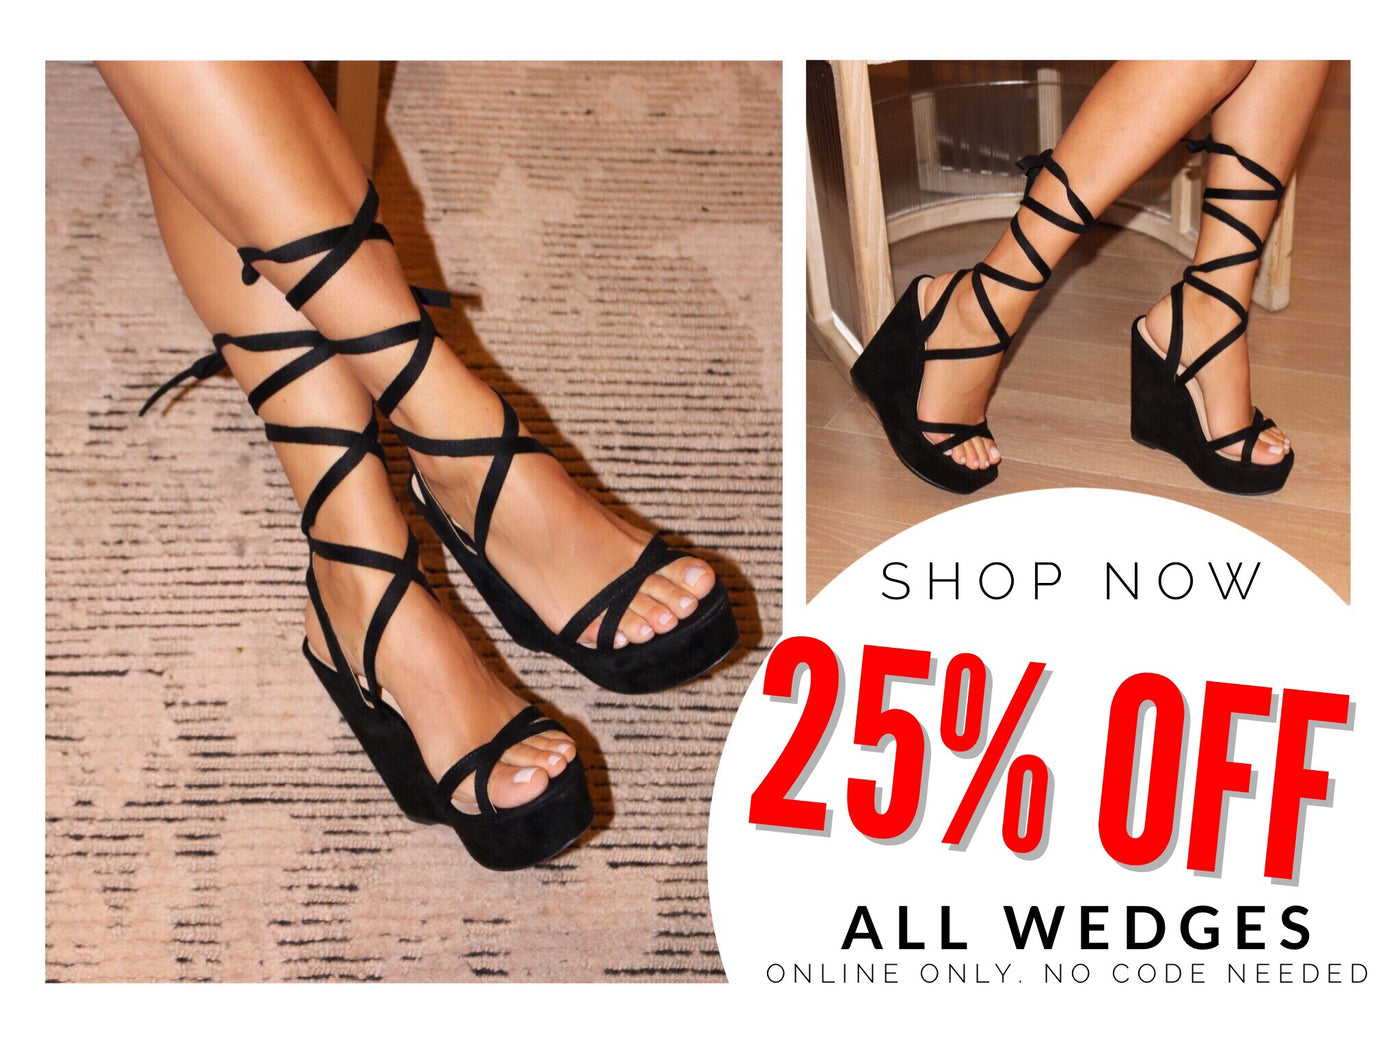 ALL WEDGES 25% OFF!